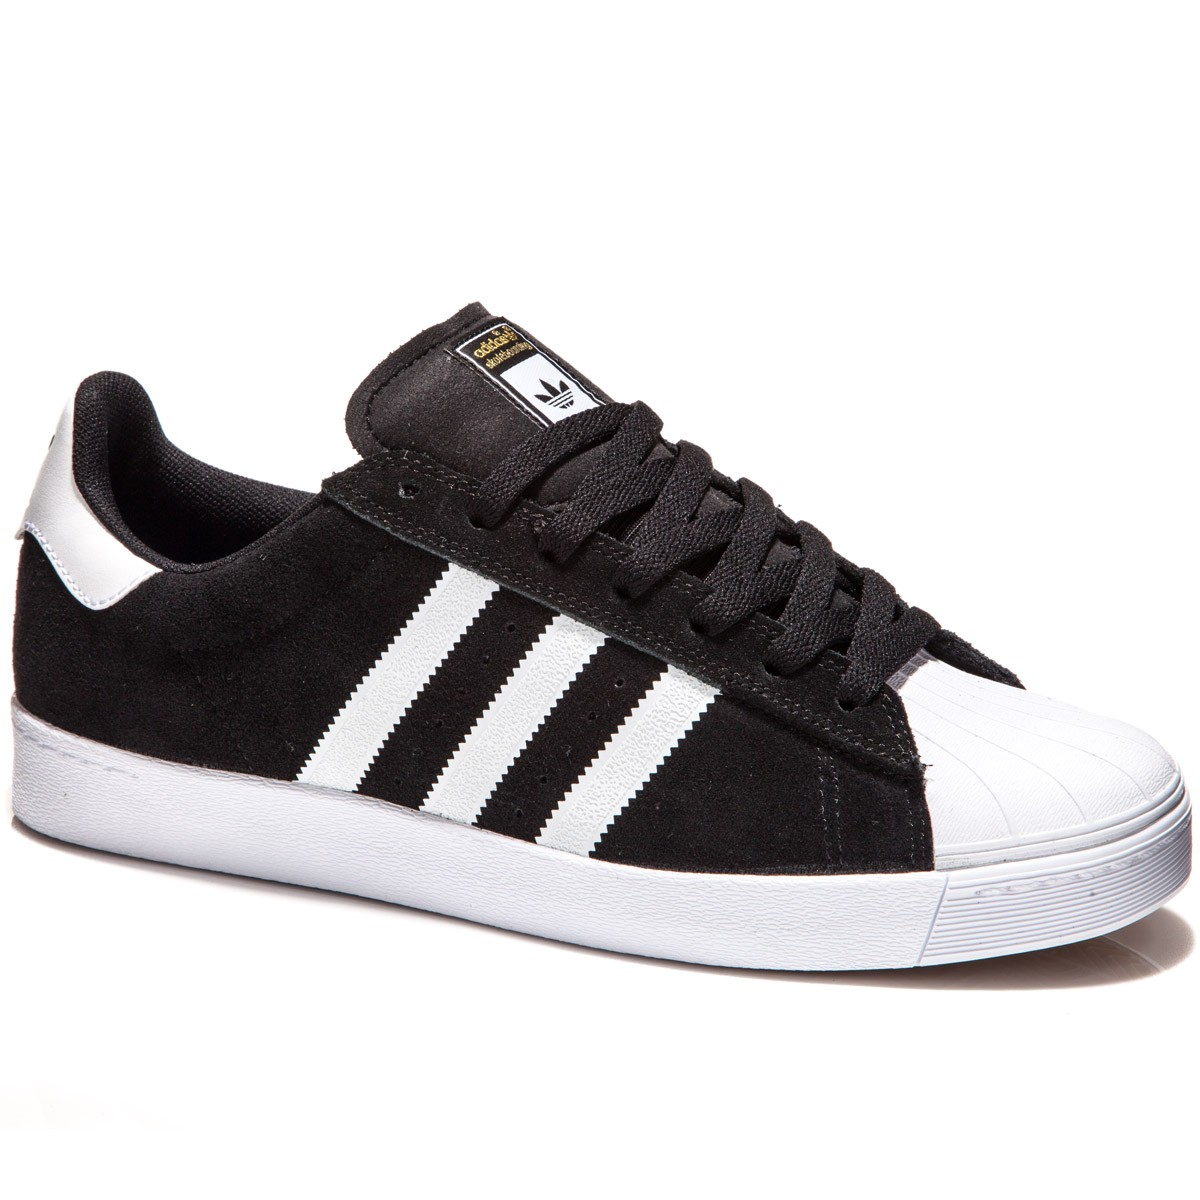 adidas superstar black and gold, adidas Store - Shop ...